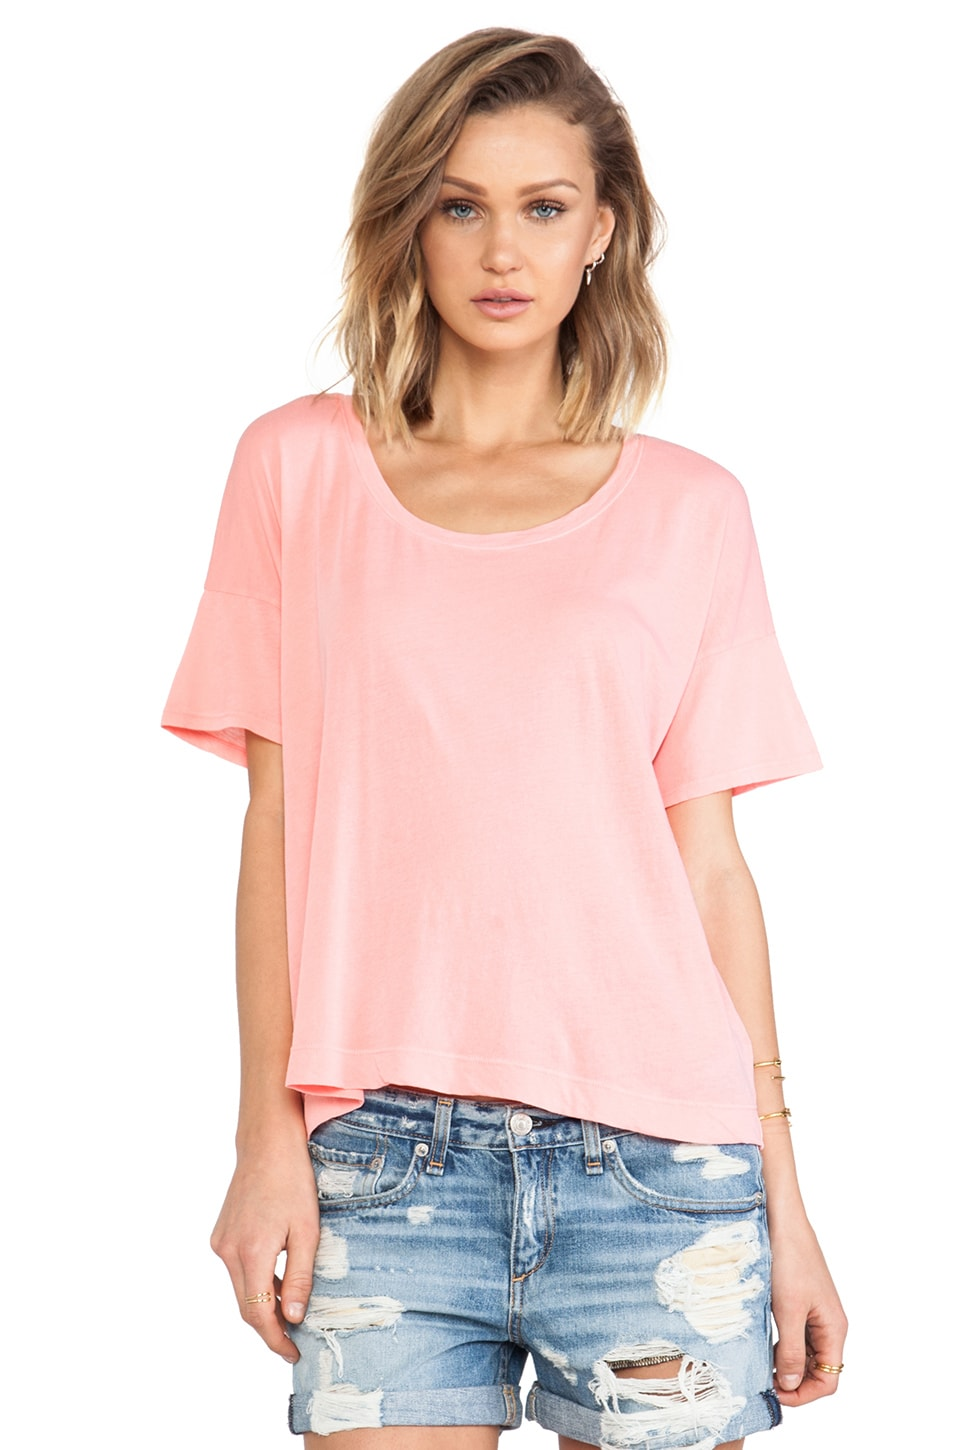 Splendid Vintage Whisper Tee in Watermelon